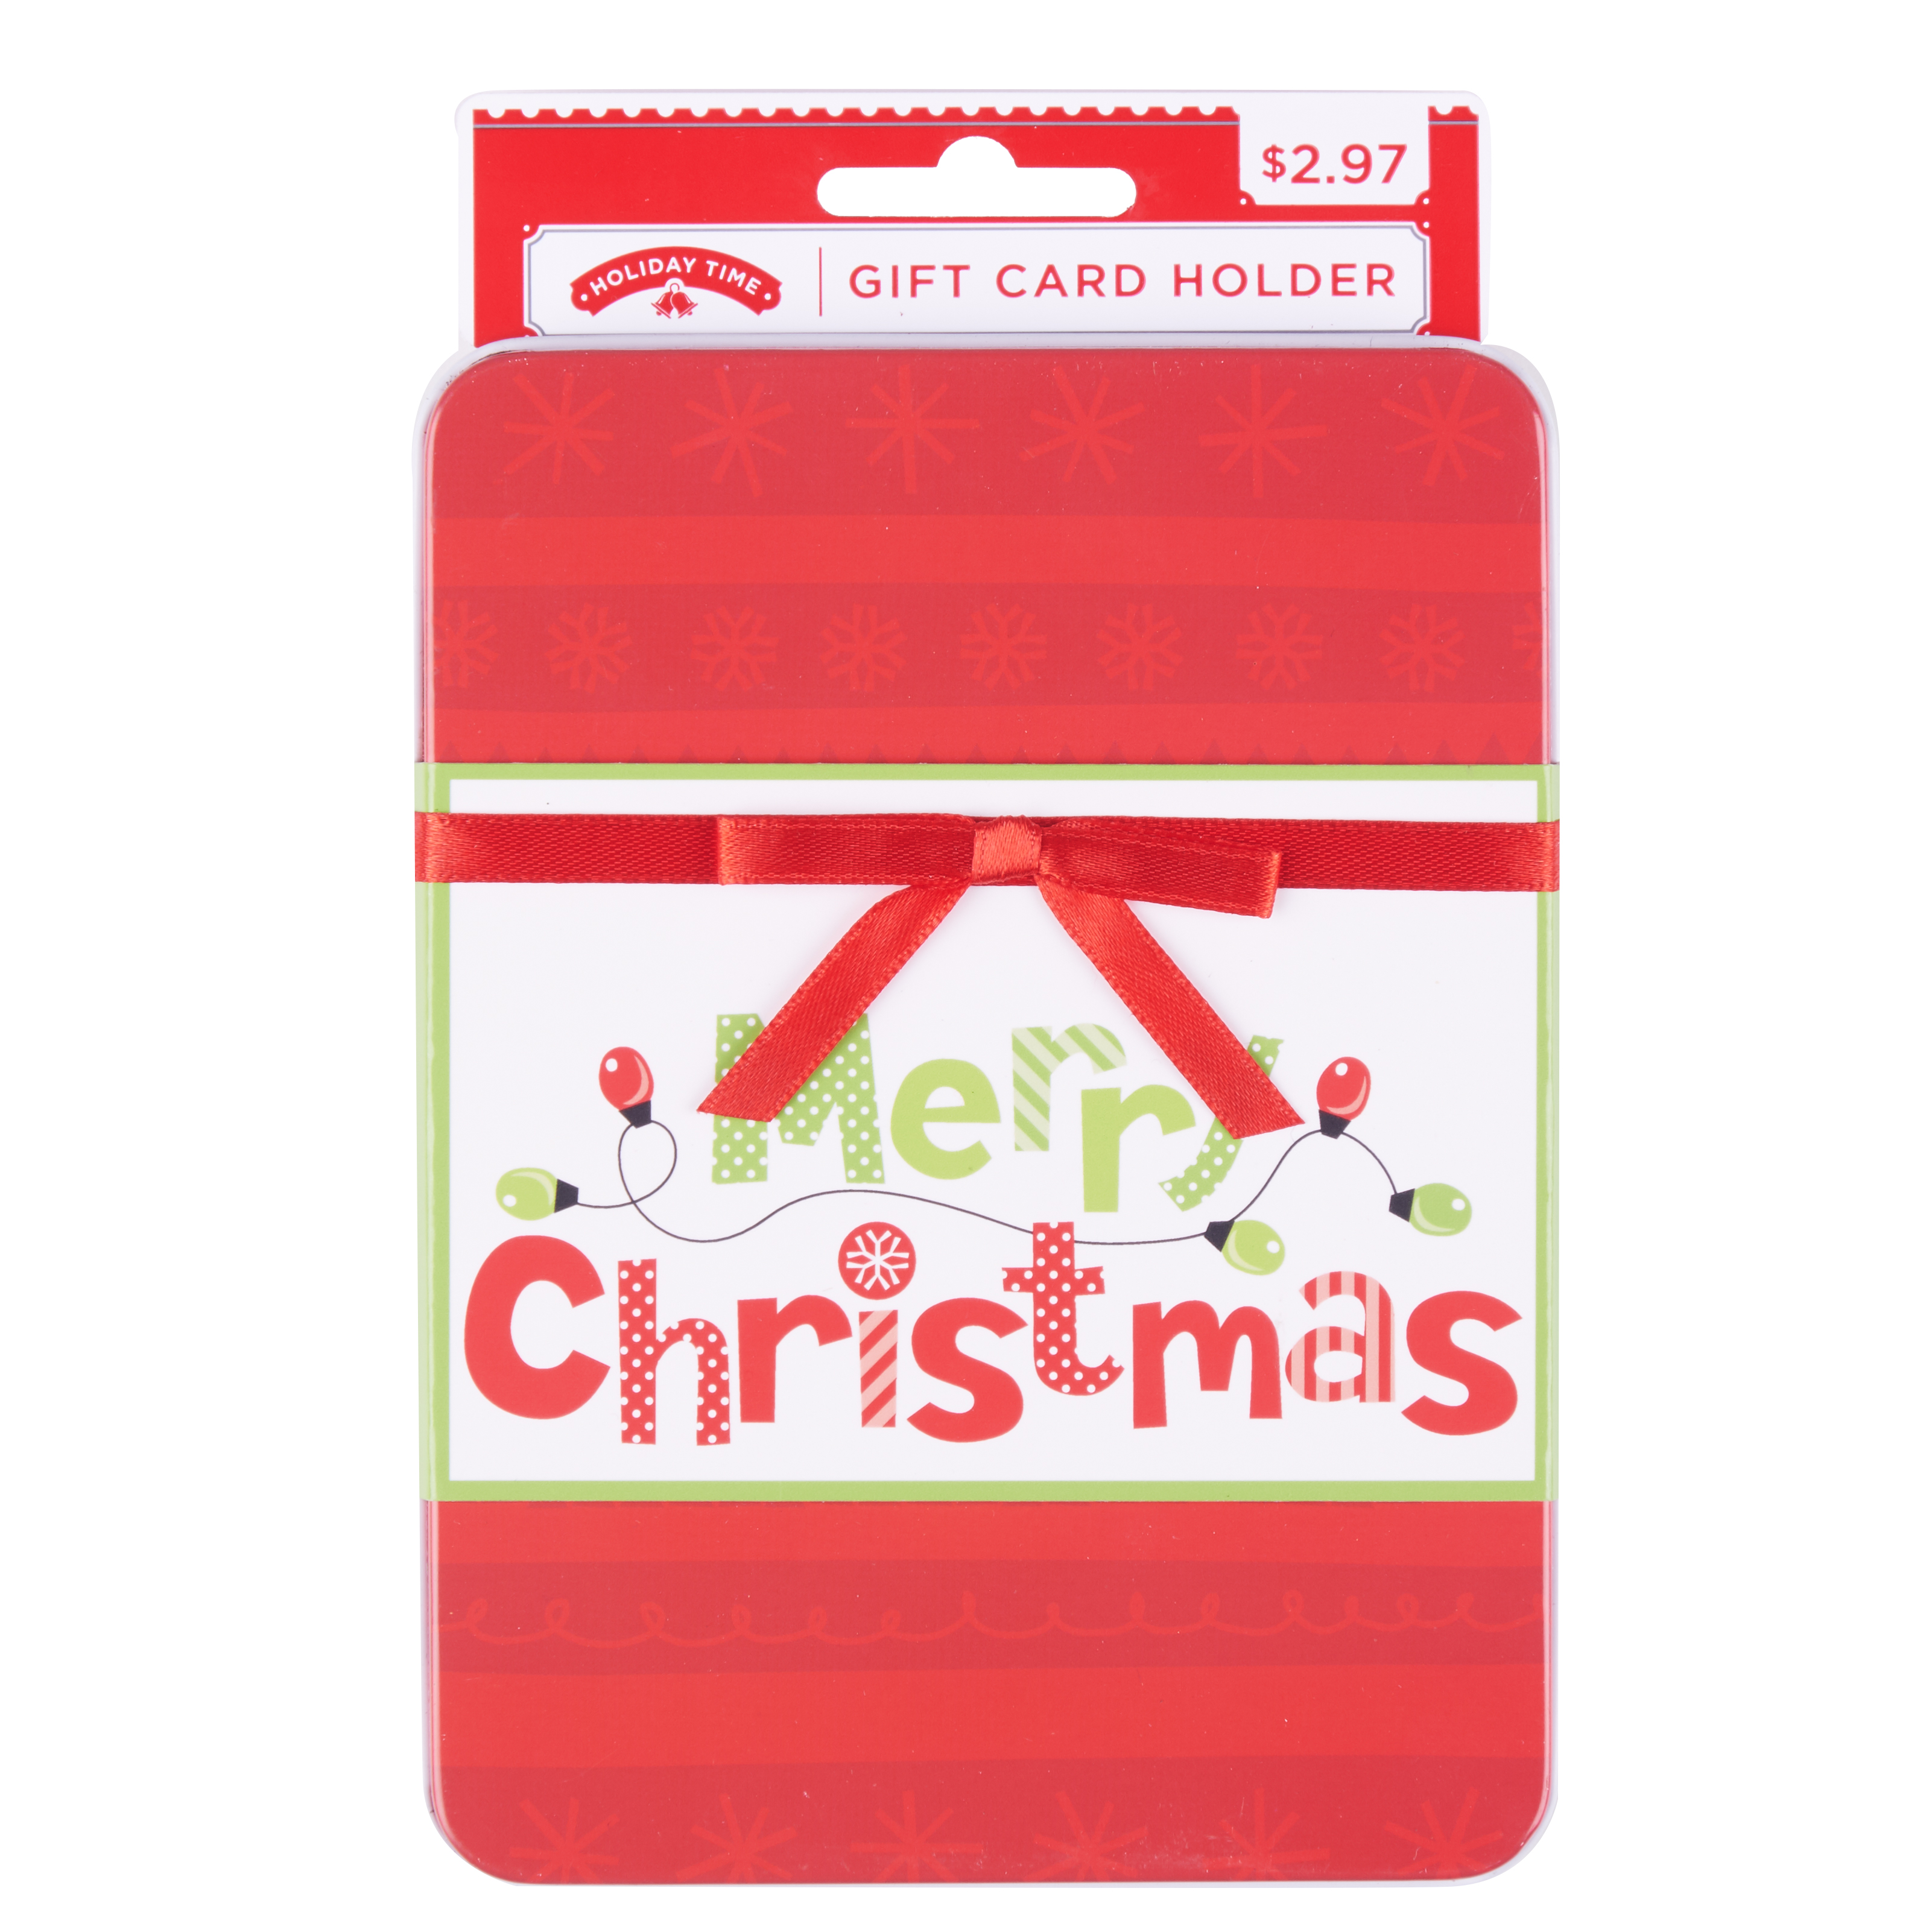 Holiday Time Merry Christmas Gift Card Holder